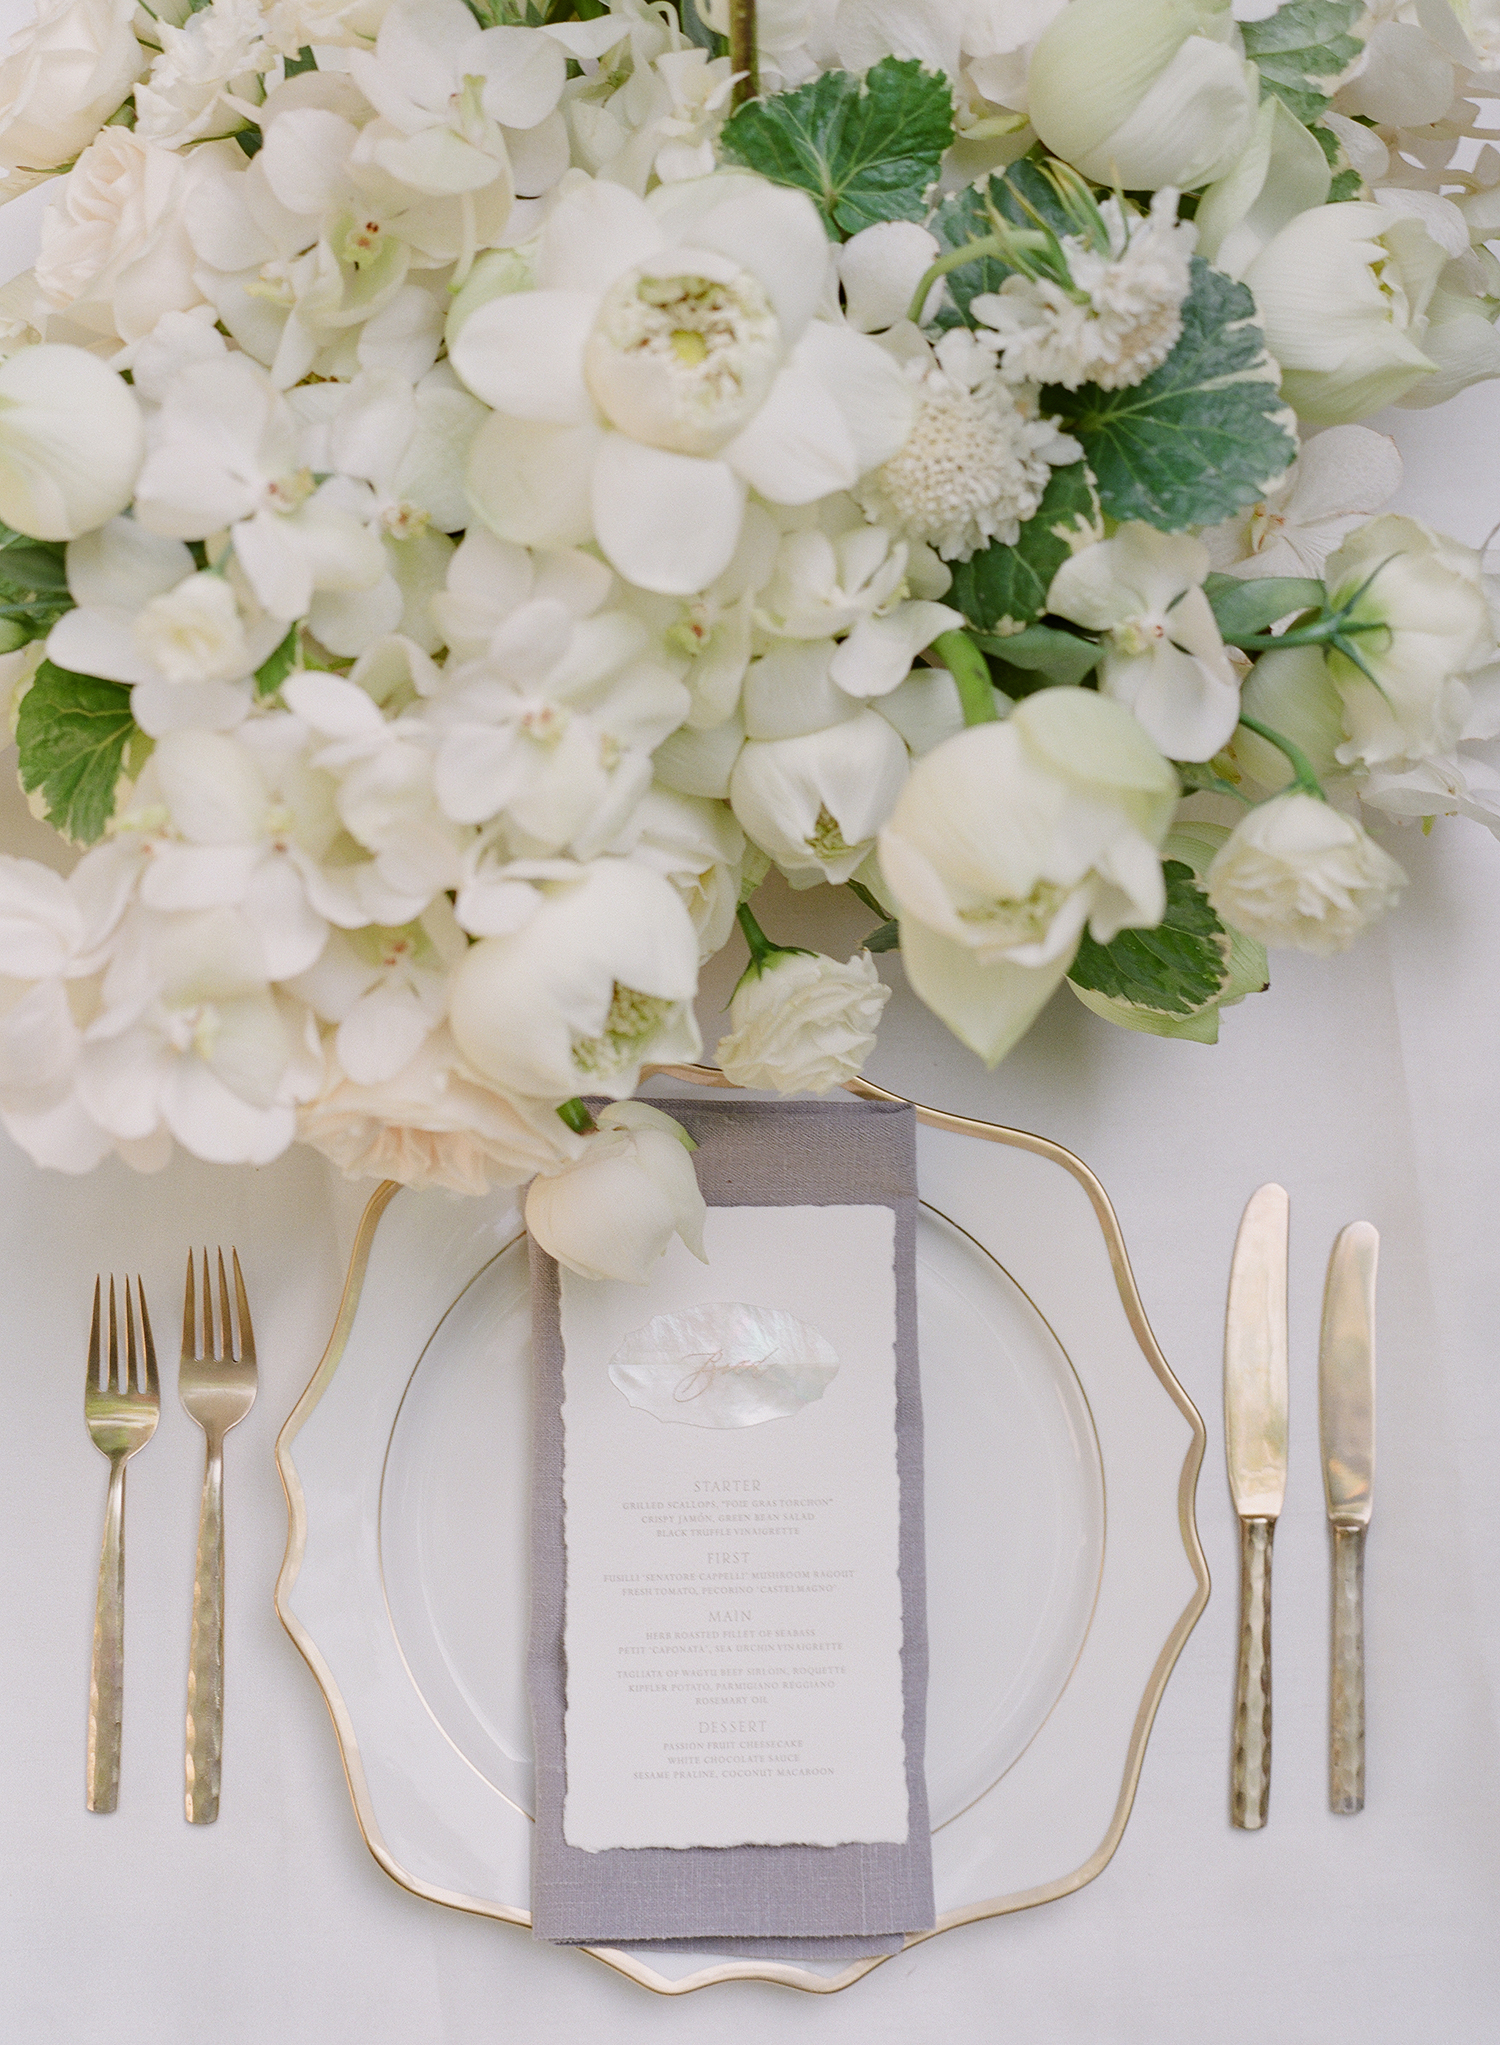 stacy brad wedding thailand plate setting with white flowers